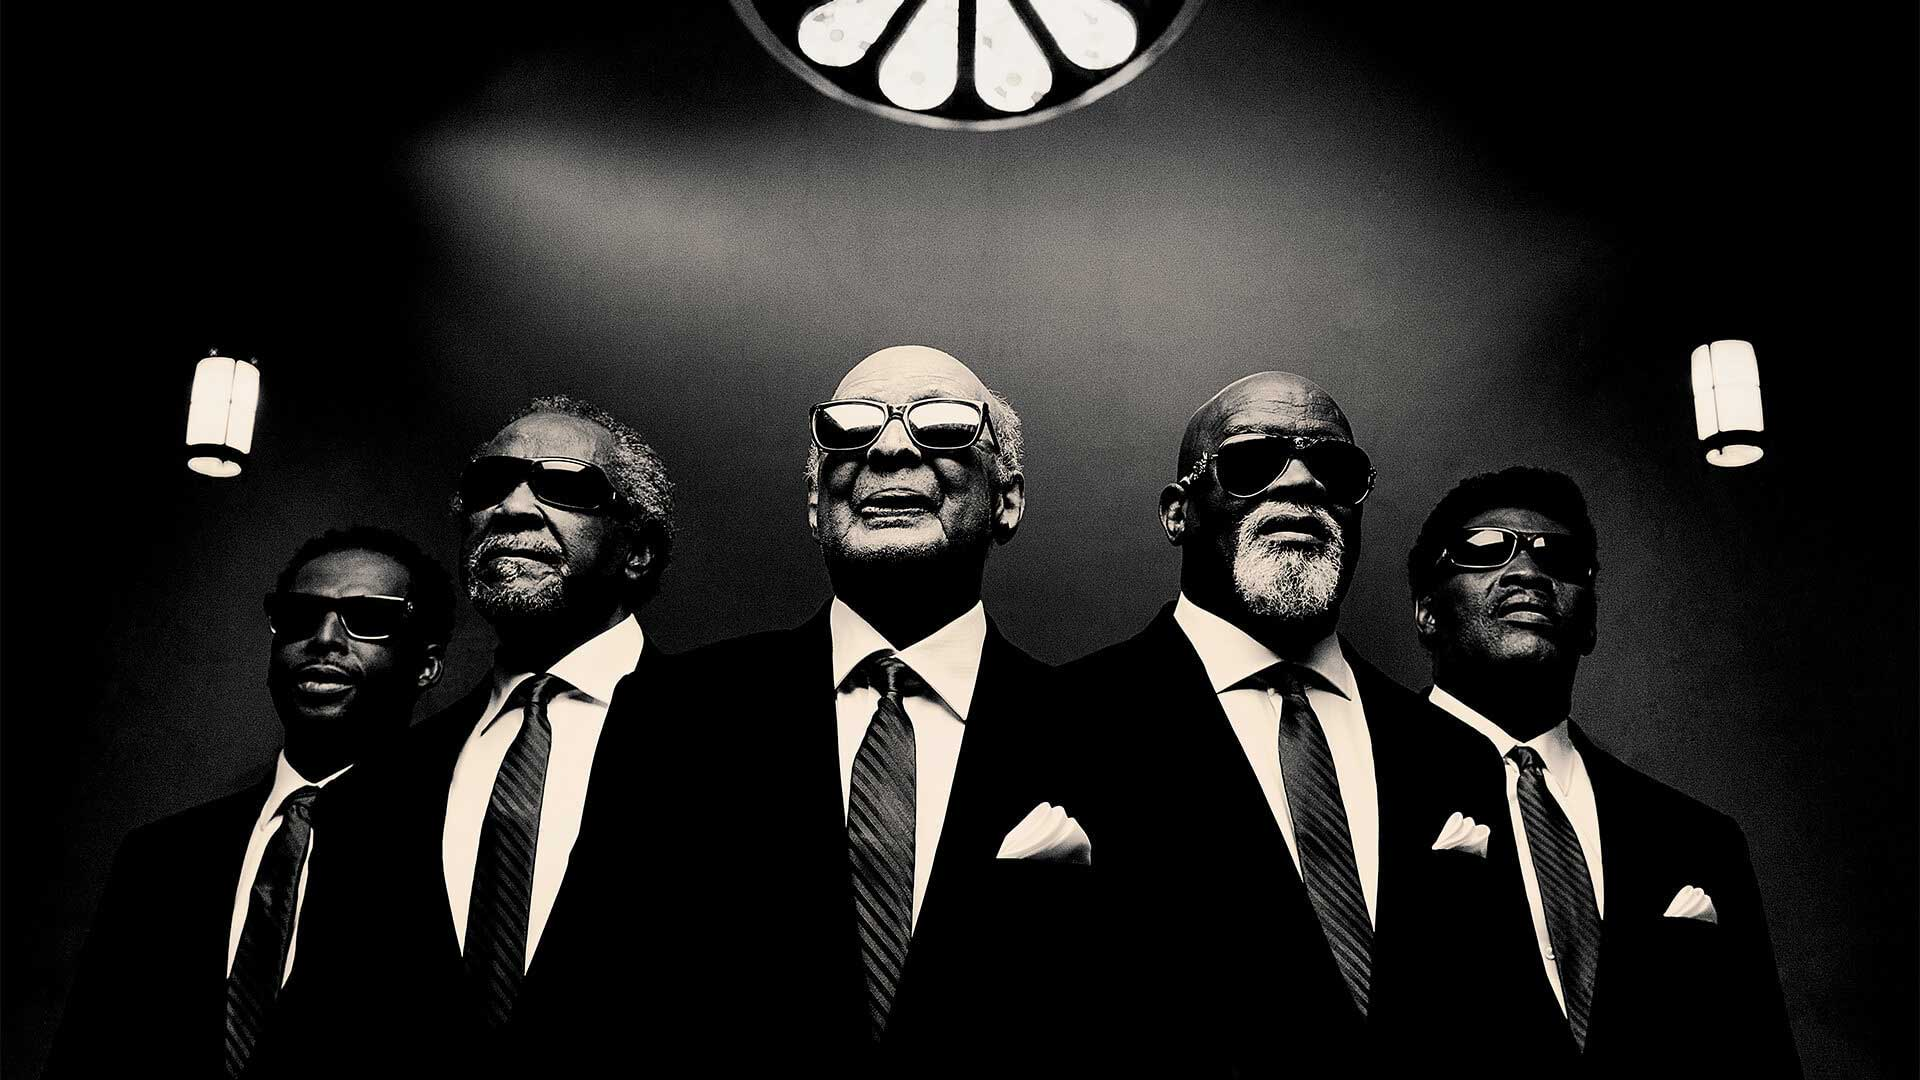 Dressed in black suits and sunglasses, five members of The Blind Boys of Alabama prepare to sing Gospel favorites.